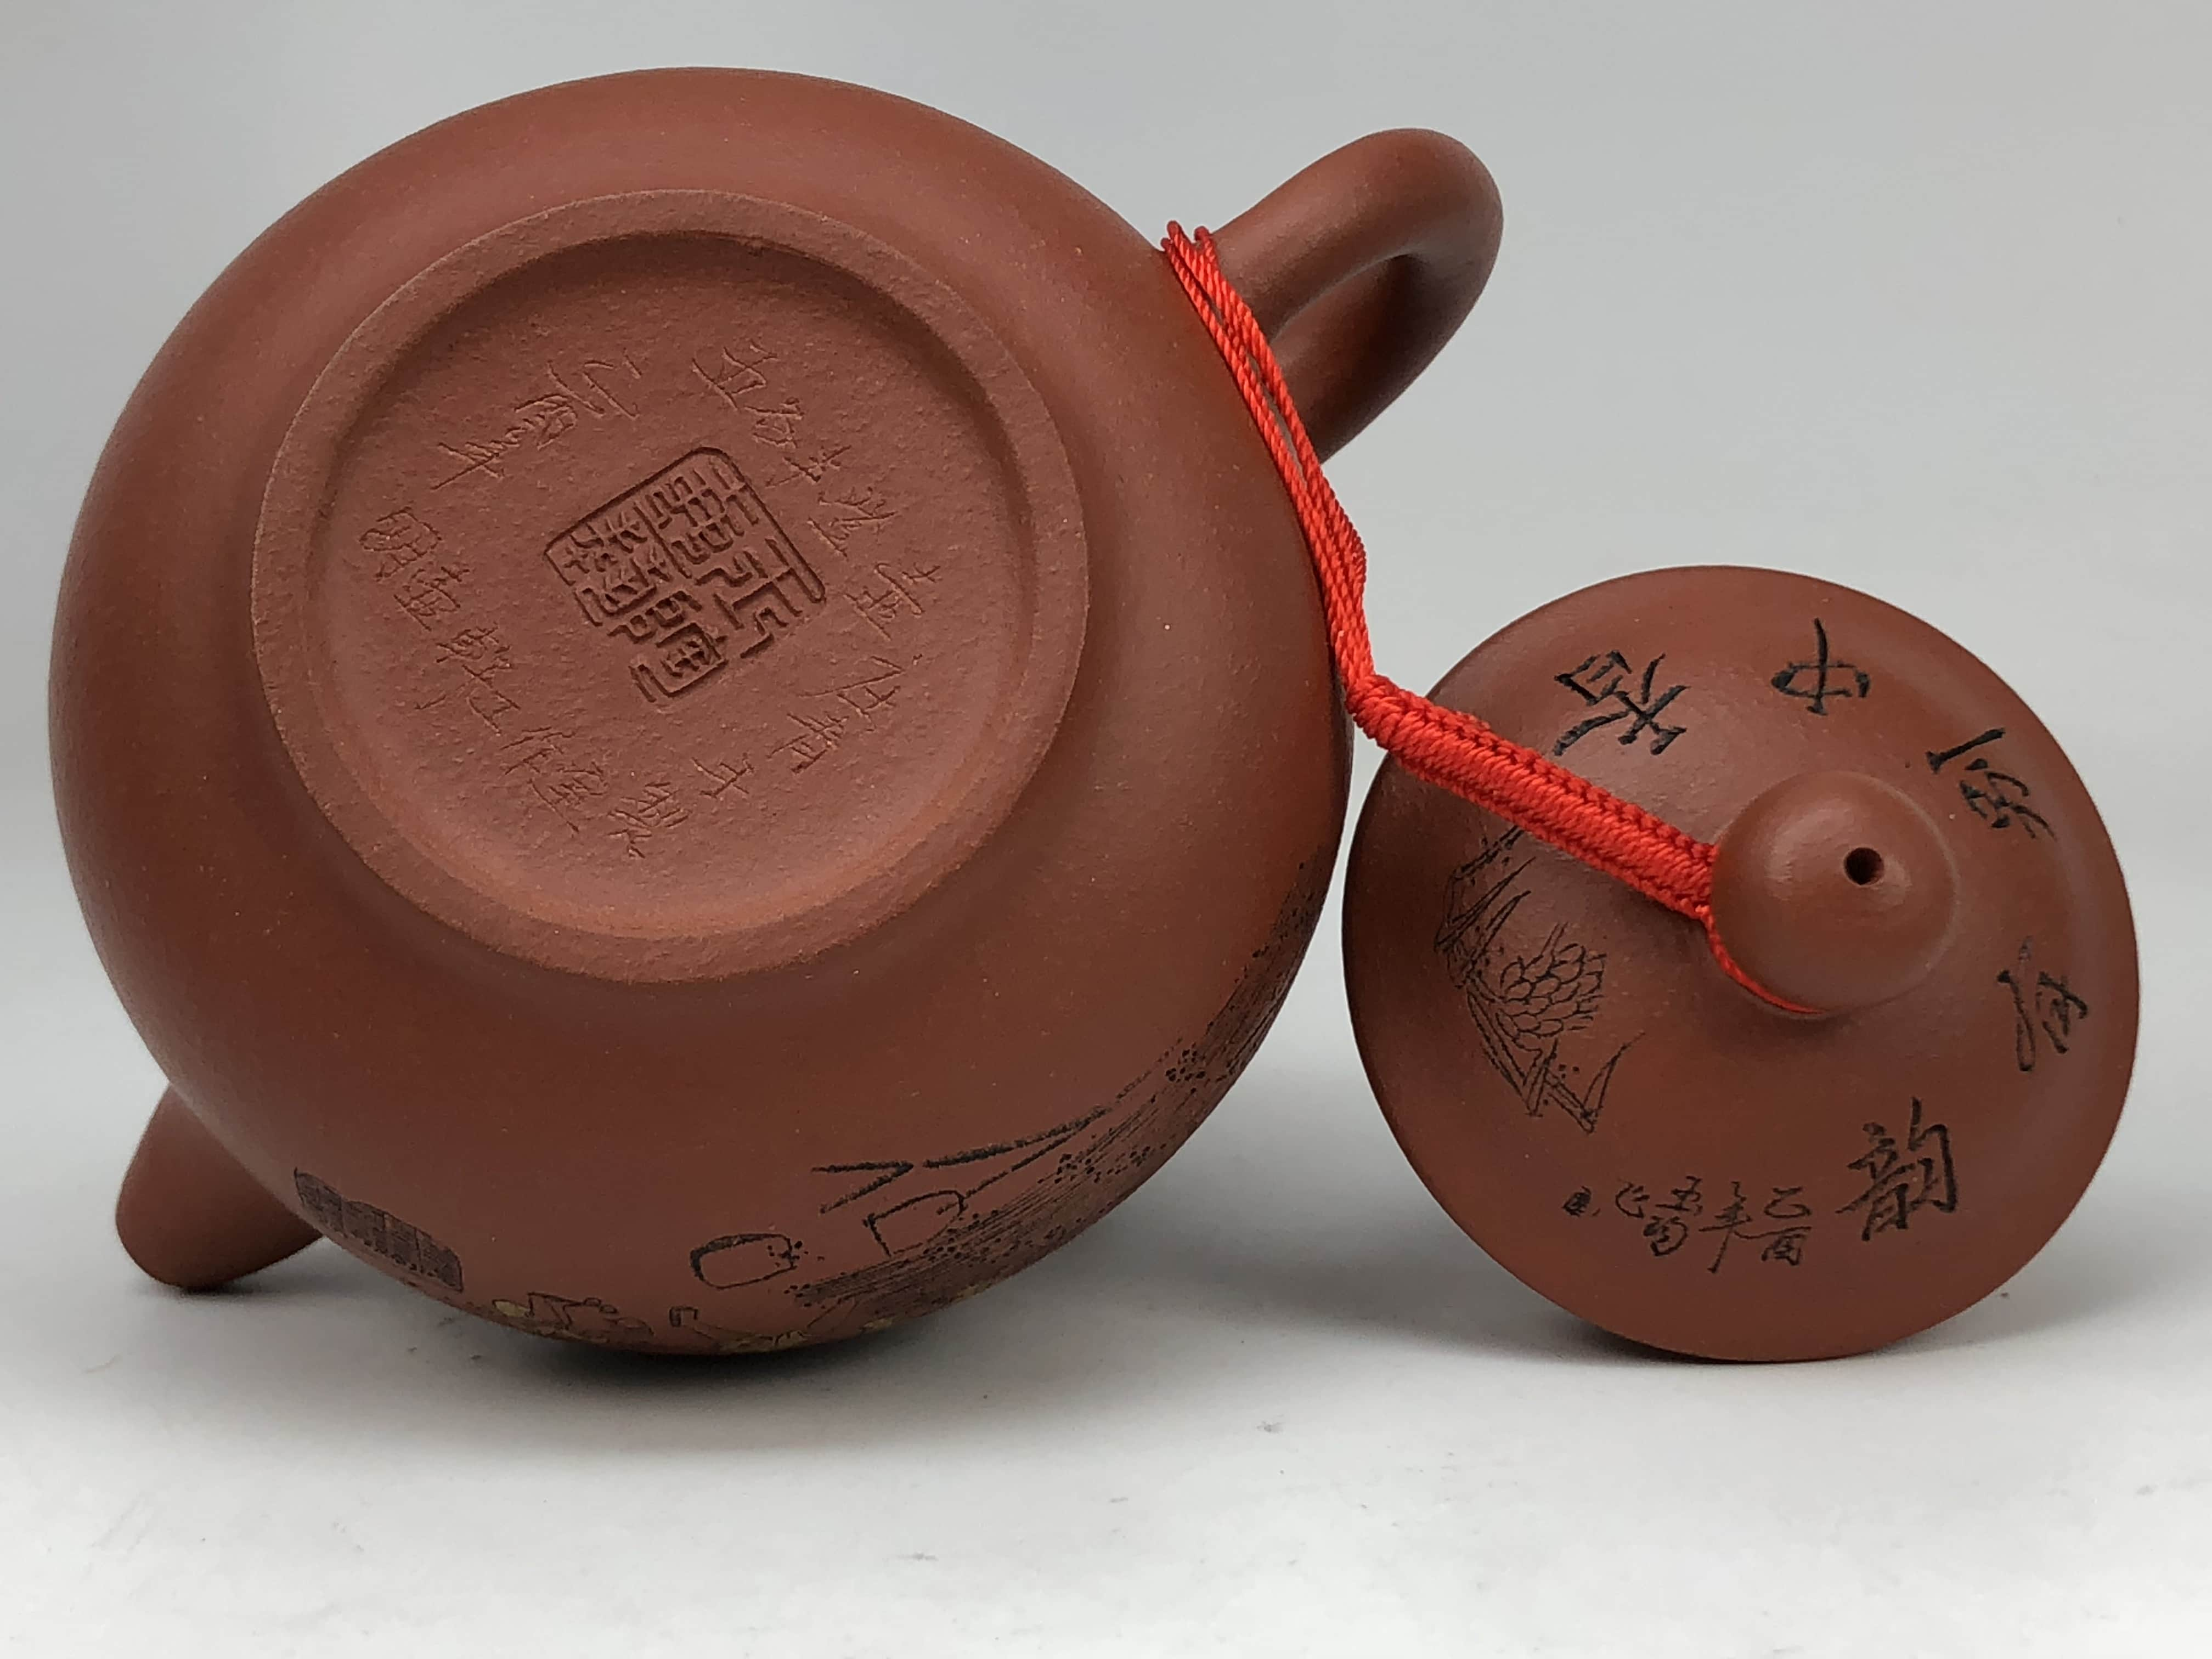 Artisan Made Yixing Clay Teapot